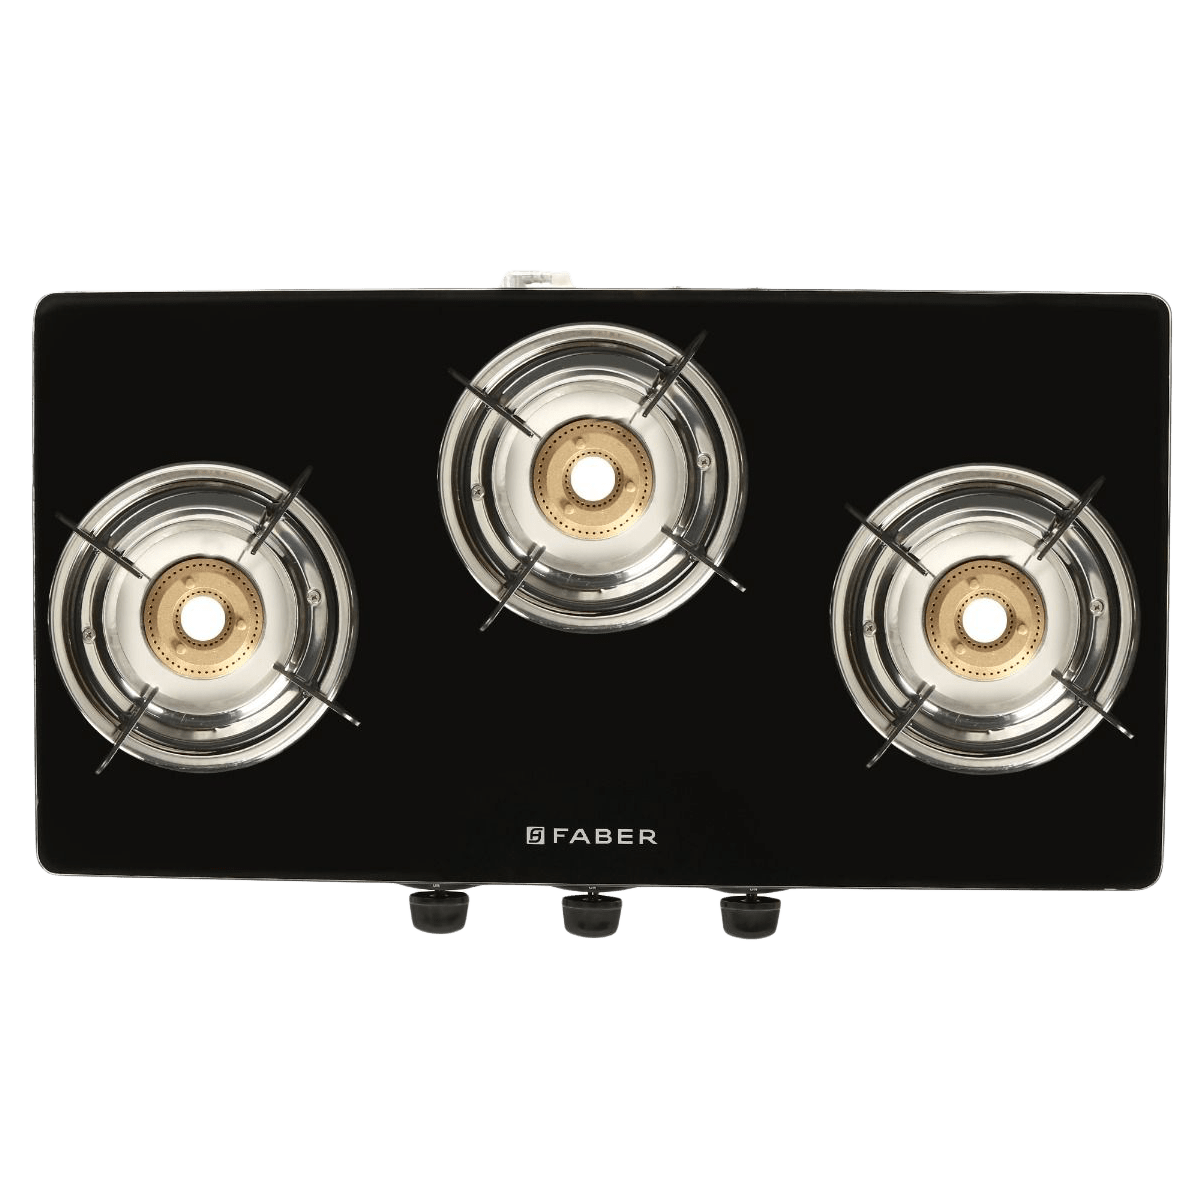 Faber Power 3BB SS 3 Burner Glass Gas Stove (Feather touch Nylon Control, 106.0630.987, Silver)